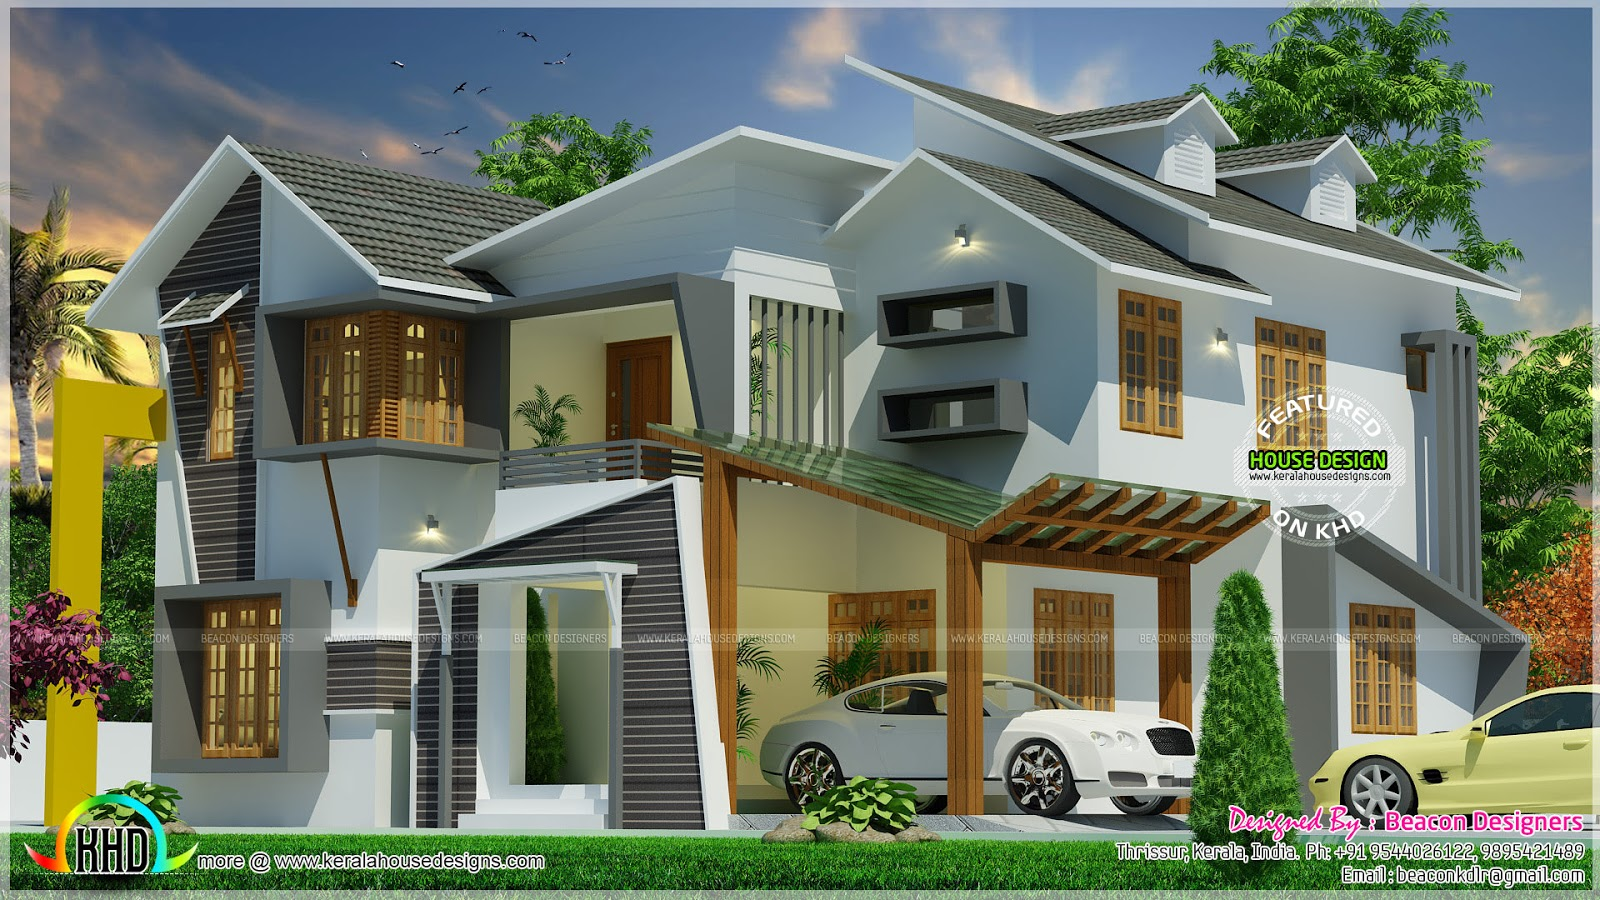 Ultra modern home with dormer windows kerala home design for Ultra modern home plans